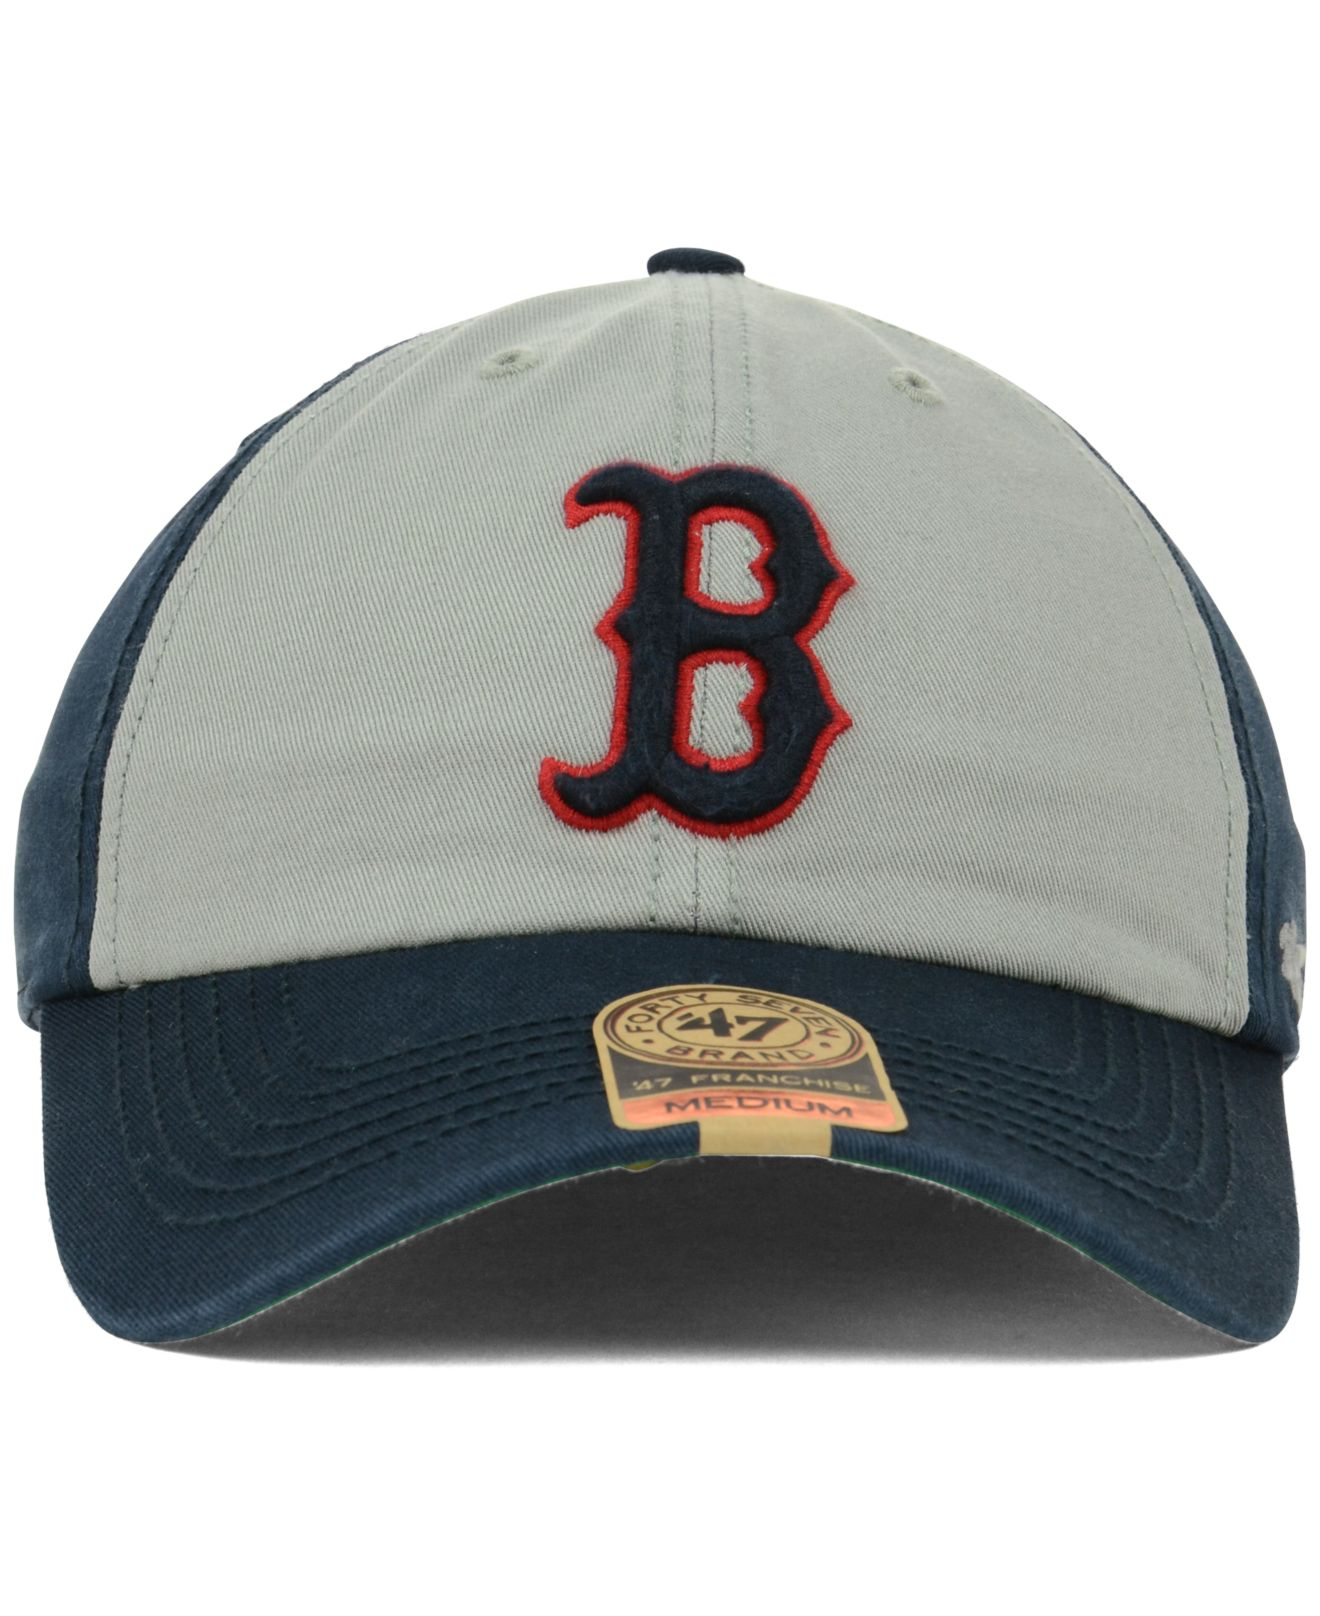 d7d84c76230 ... authentic lyst 47 brand boston red sox vip franchise cap in gray for men  e8112 b6af5